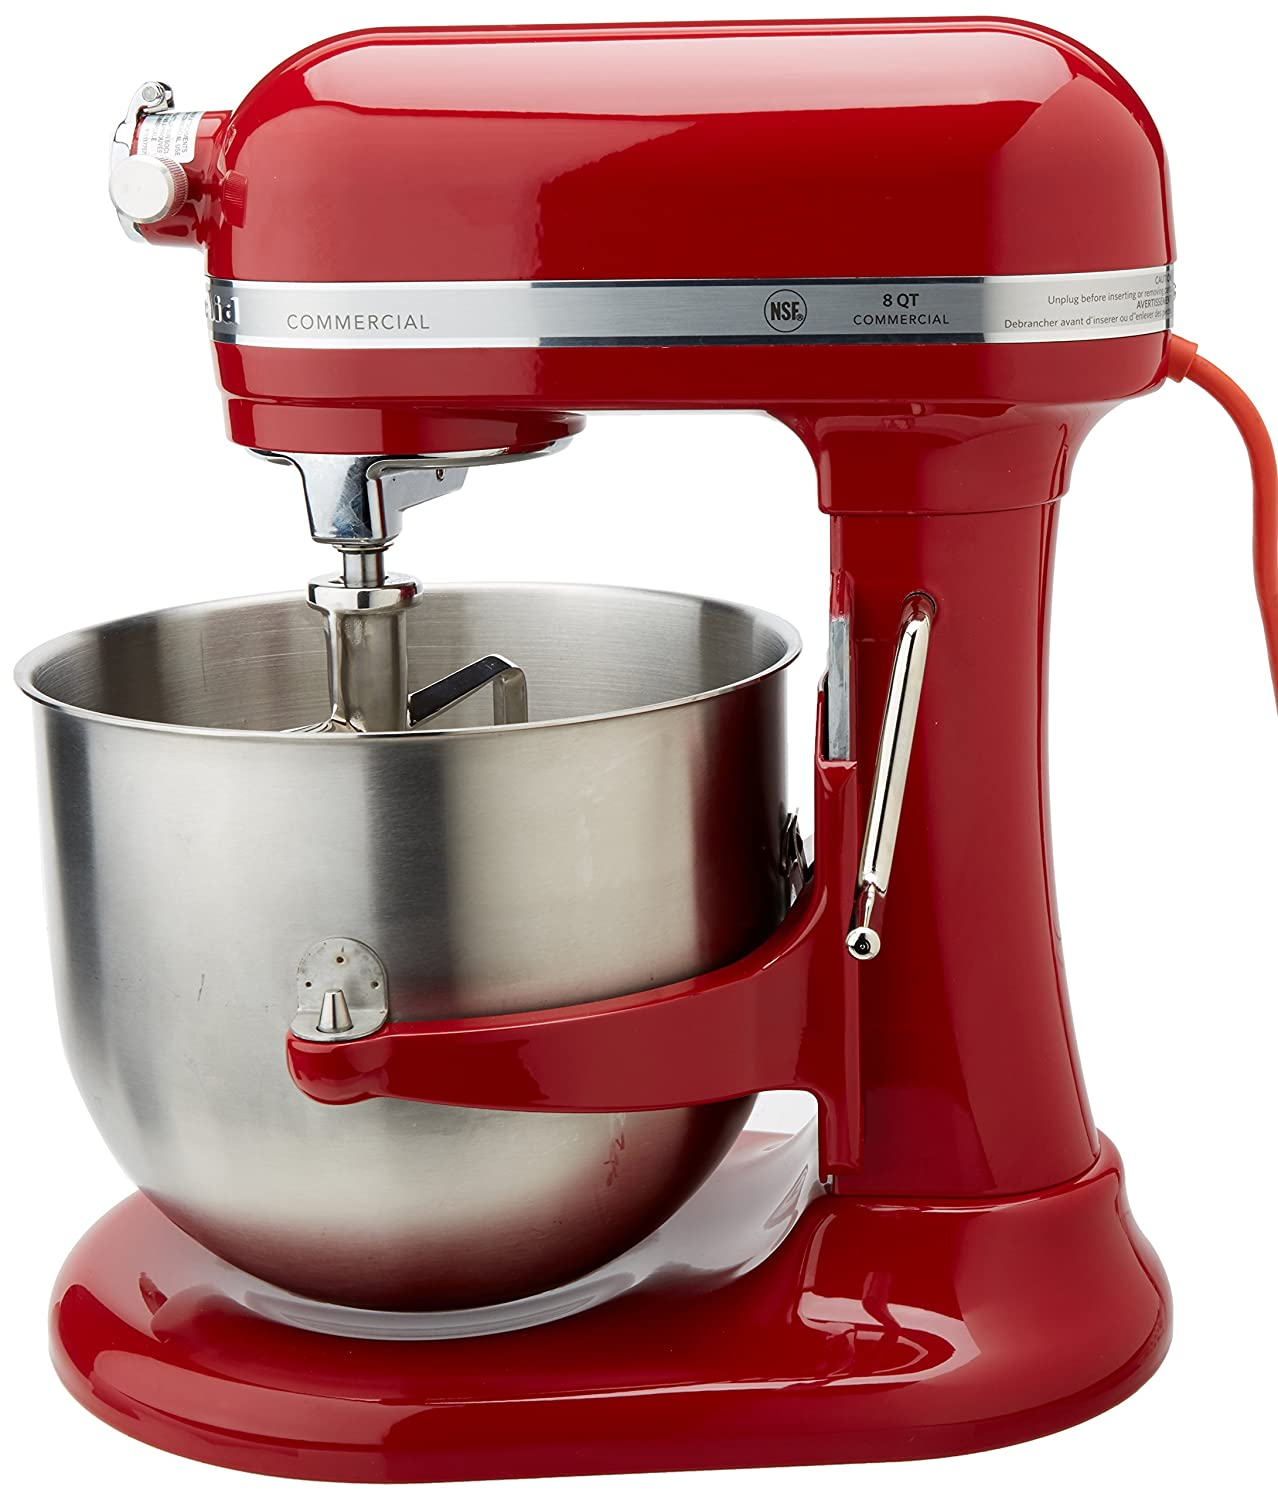 Amazon.com: KitchenAid (KSM8990OB) 8-Quart Stand Mixer with Bowl ...